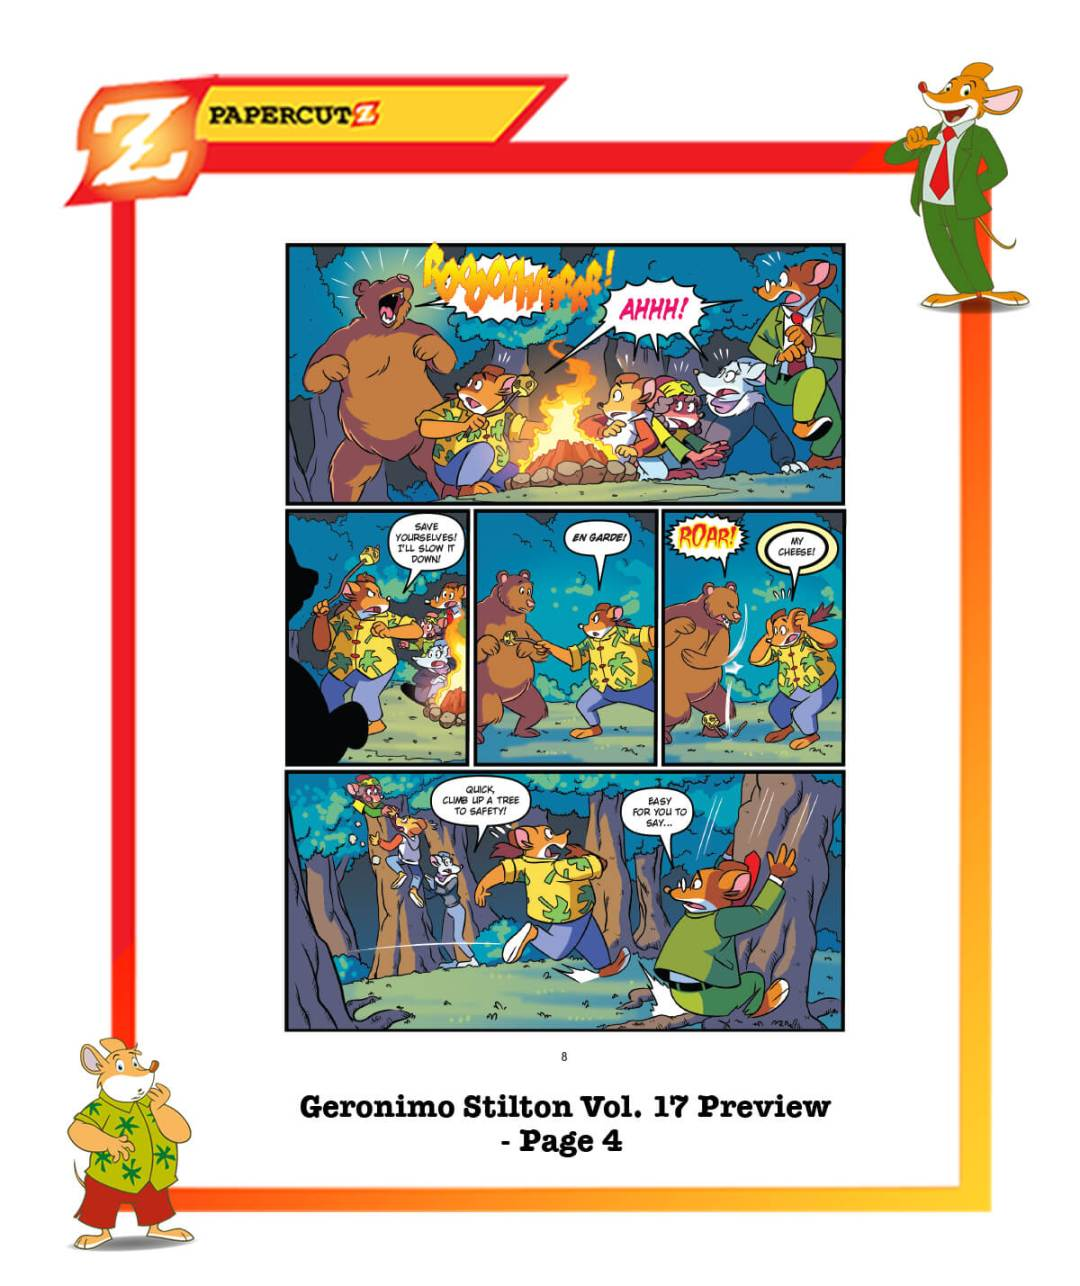 geronimo_stilton_017_preview_page04